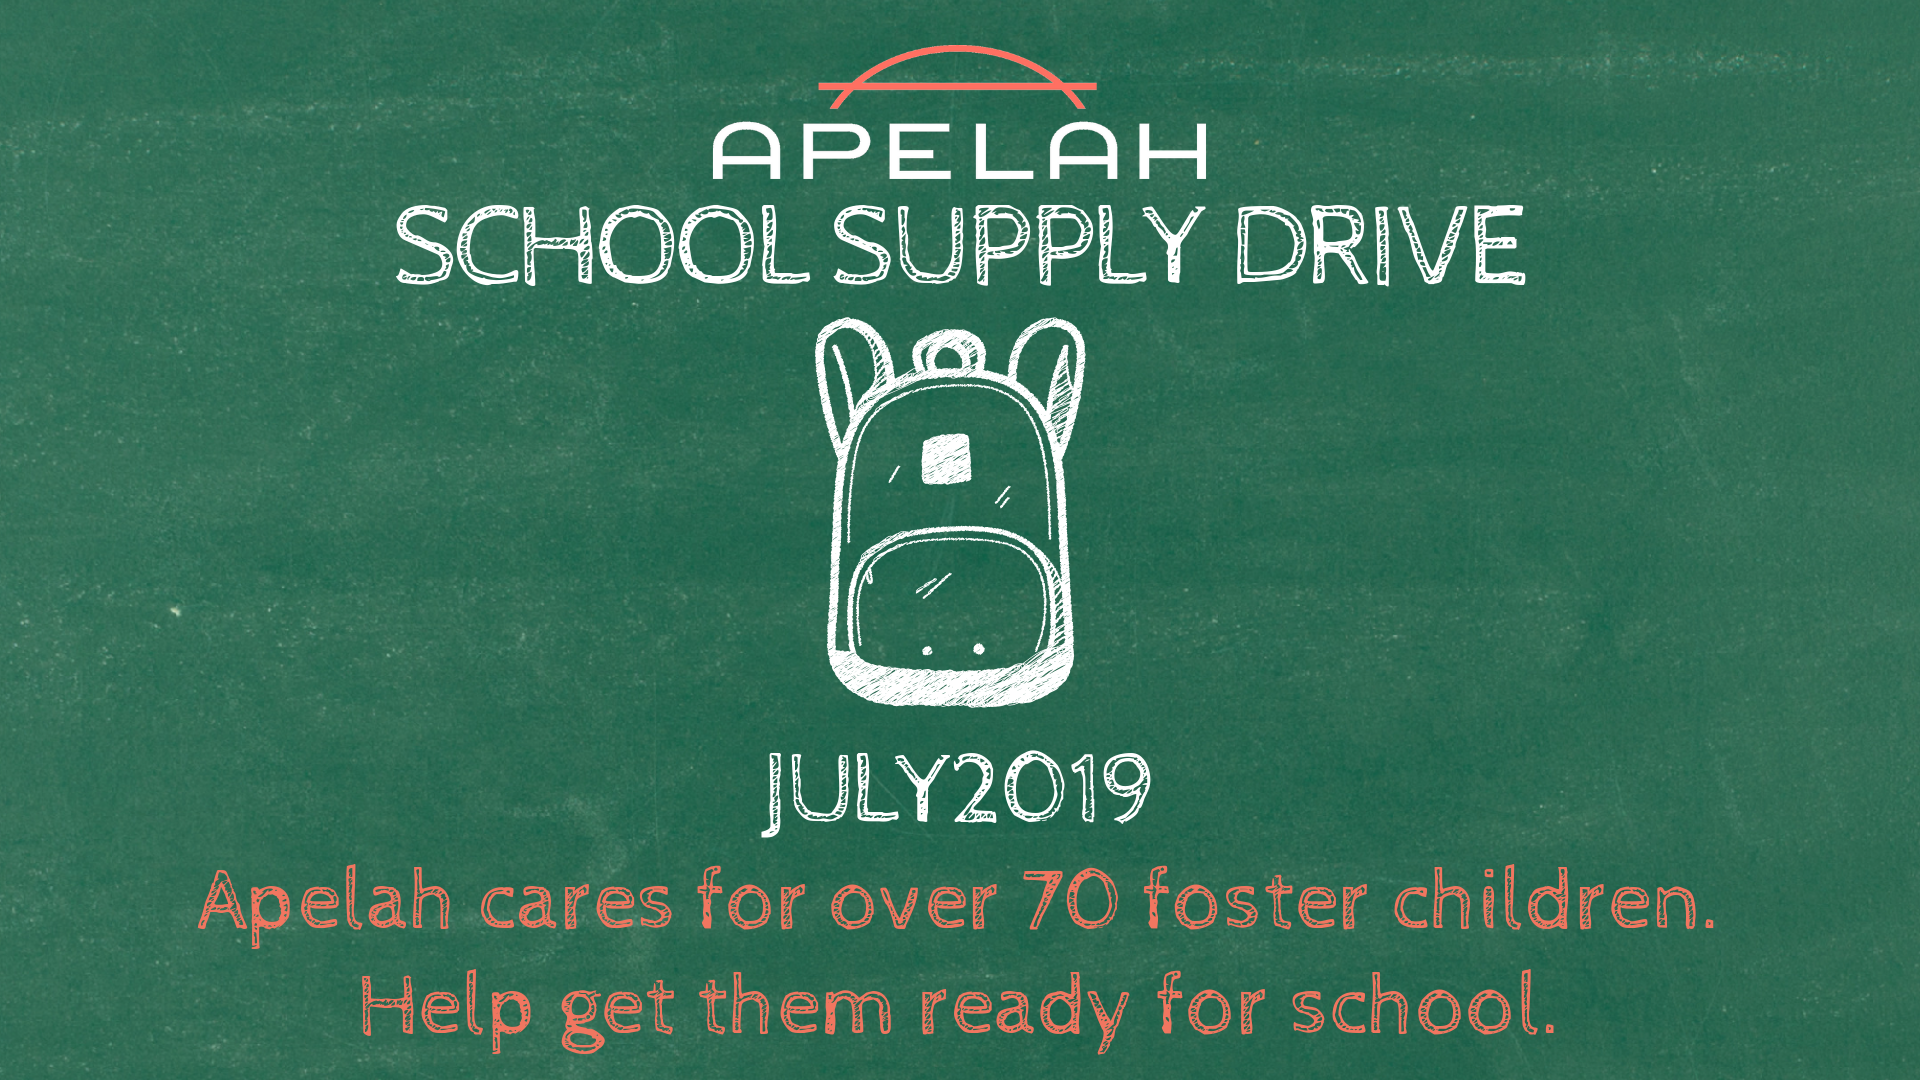 School Supply Drive Flyer Header with picture of a backpack